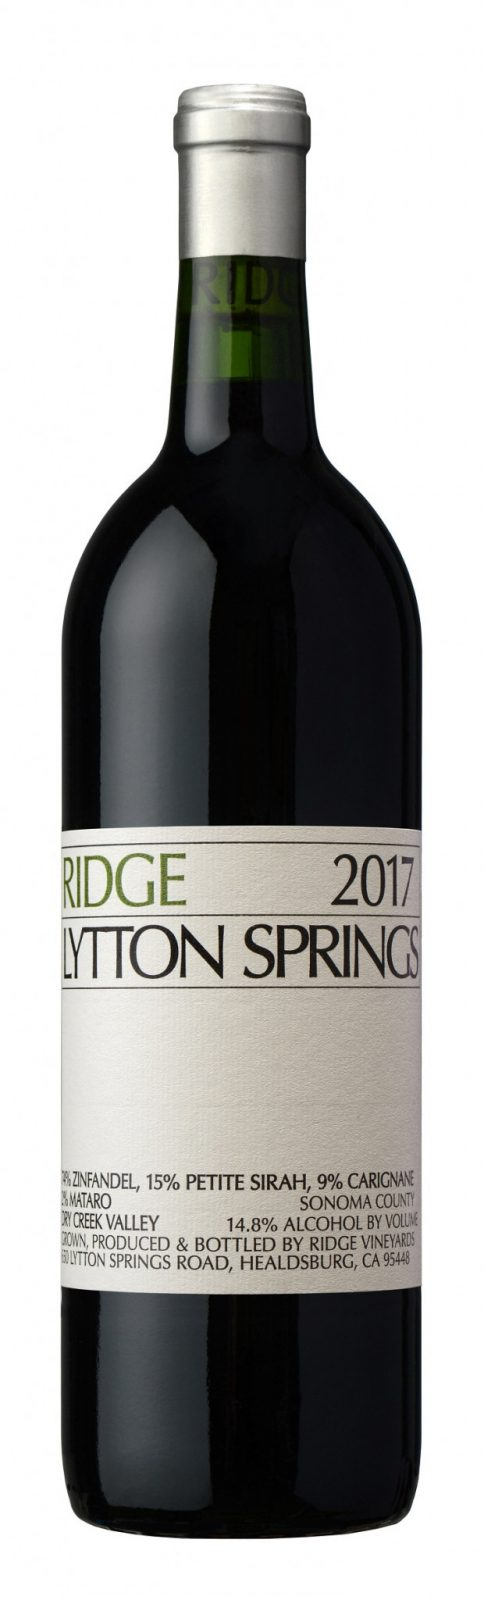 Ridge Lytton Springs_wineaffair